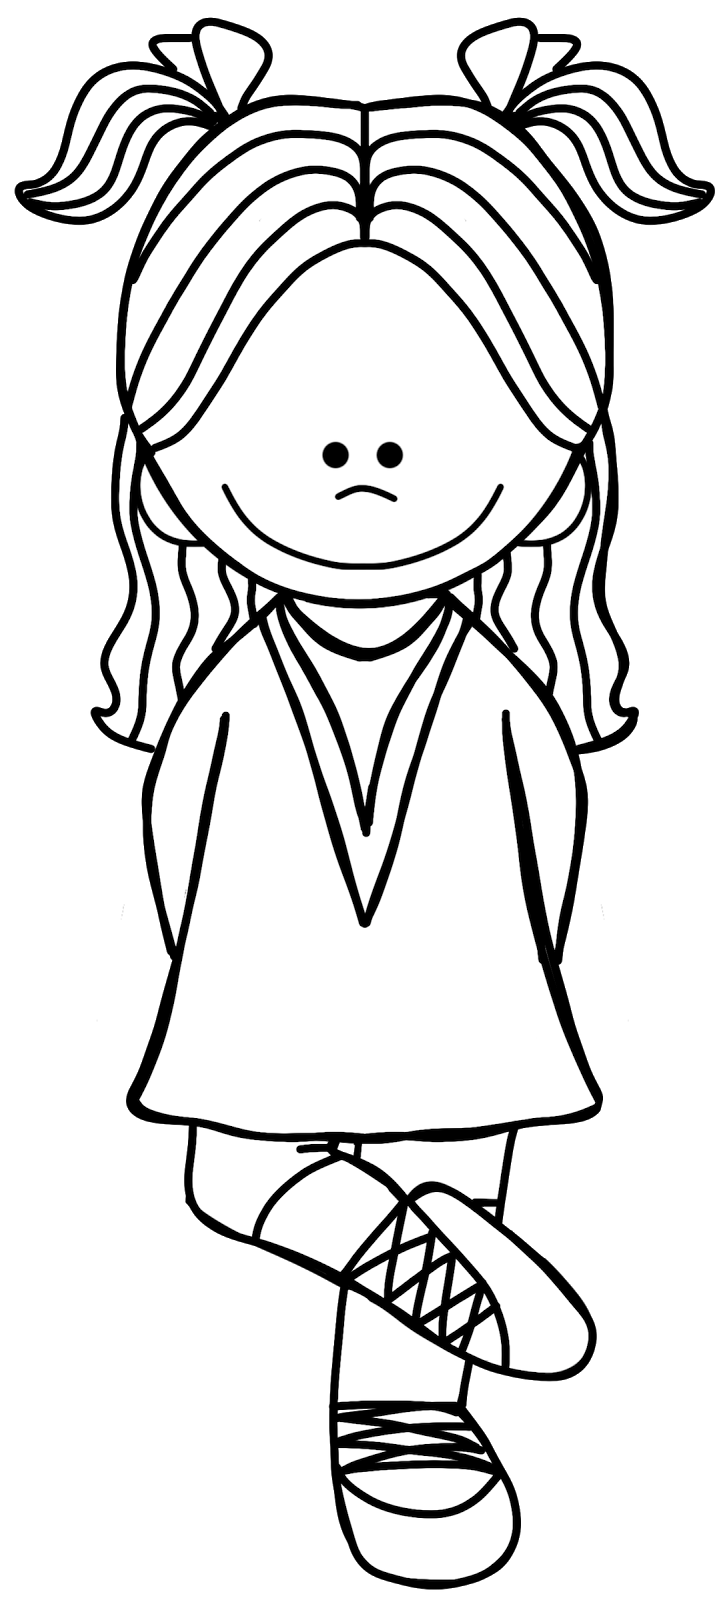 Dancer clipart black and white. Dancing kid dance clip